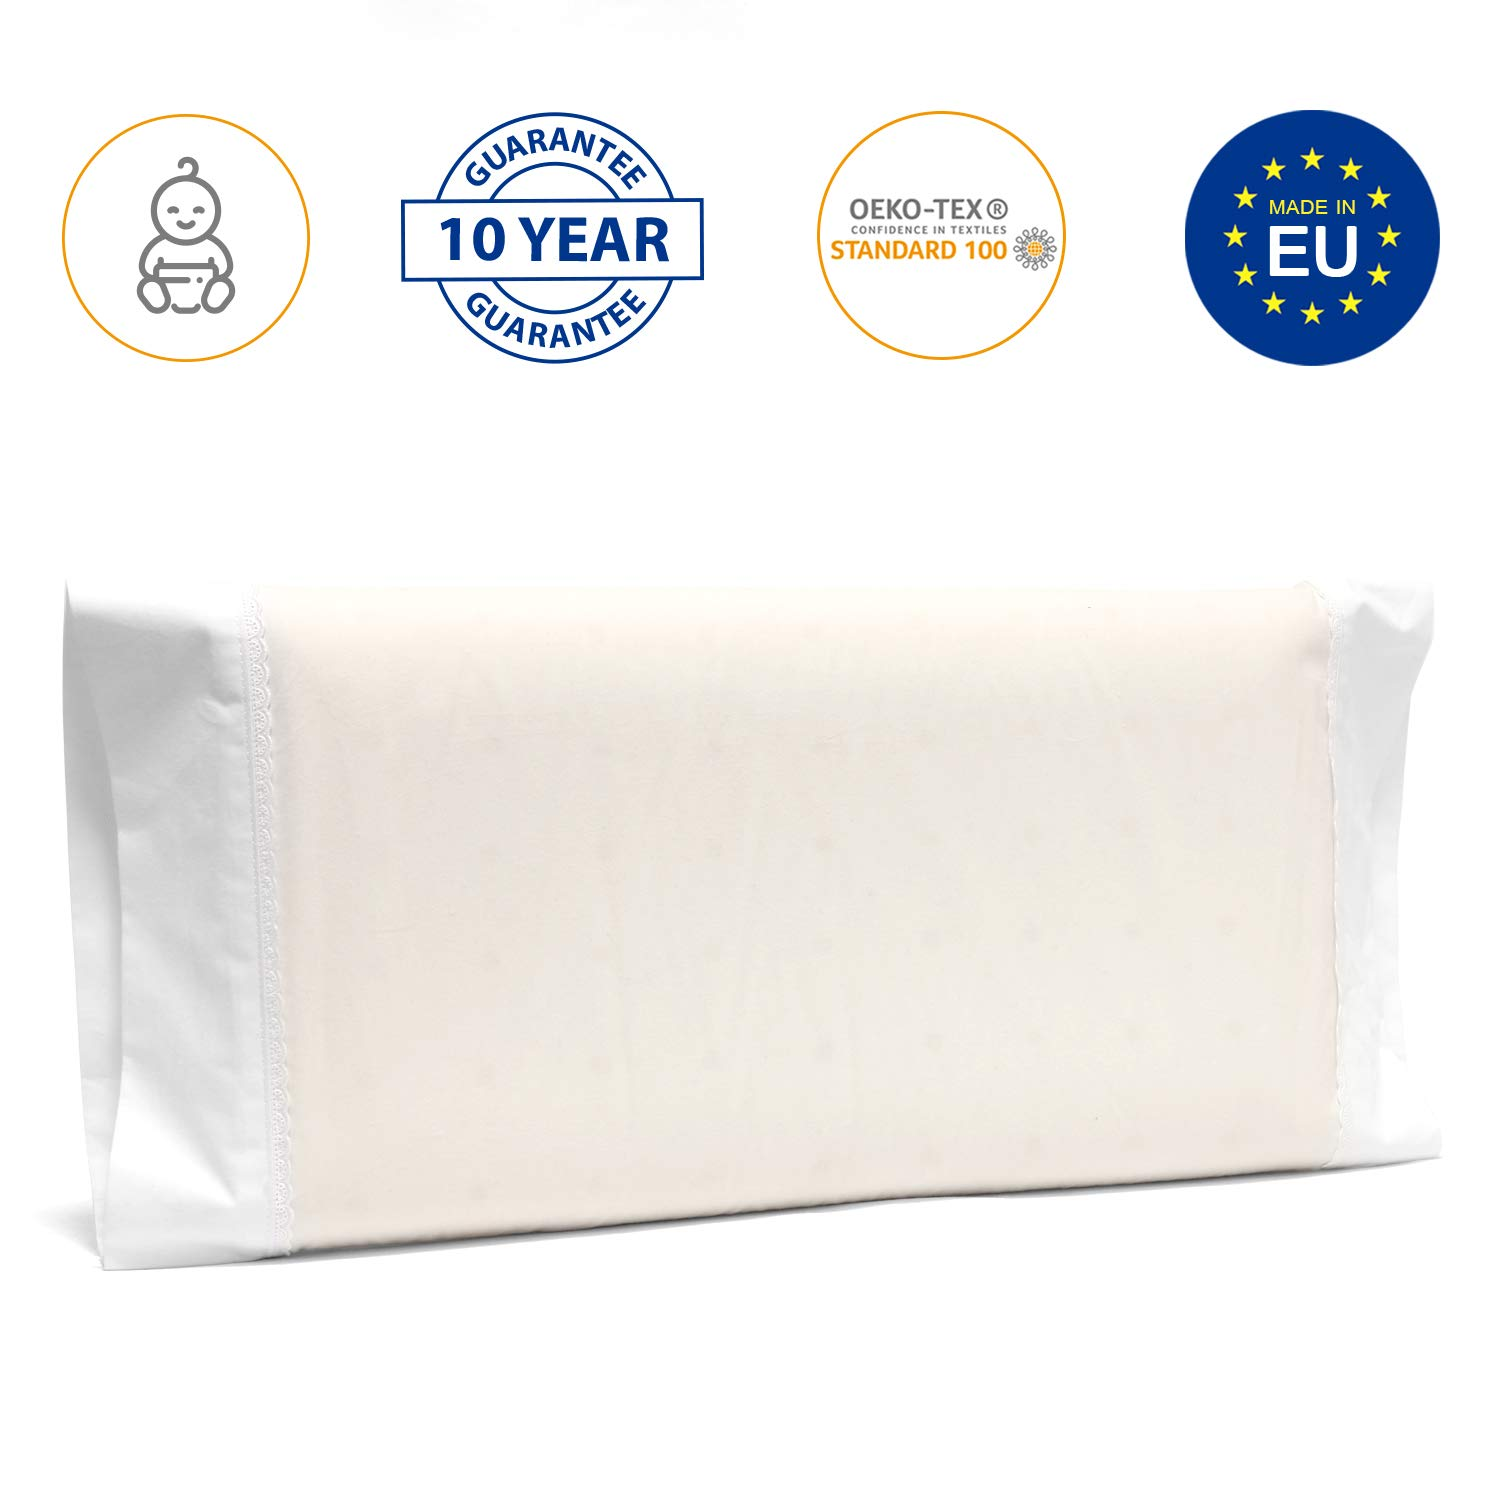 Flat-Head Syndrome /& Plagiocephaly Prevention Toddler Bed and Moses Basket 50 x 30 cm Made in Europe /& Oeko Tex Certified Memory Foam Pillow for Travel Cot Newborn Essentials